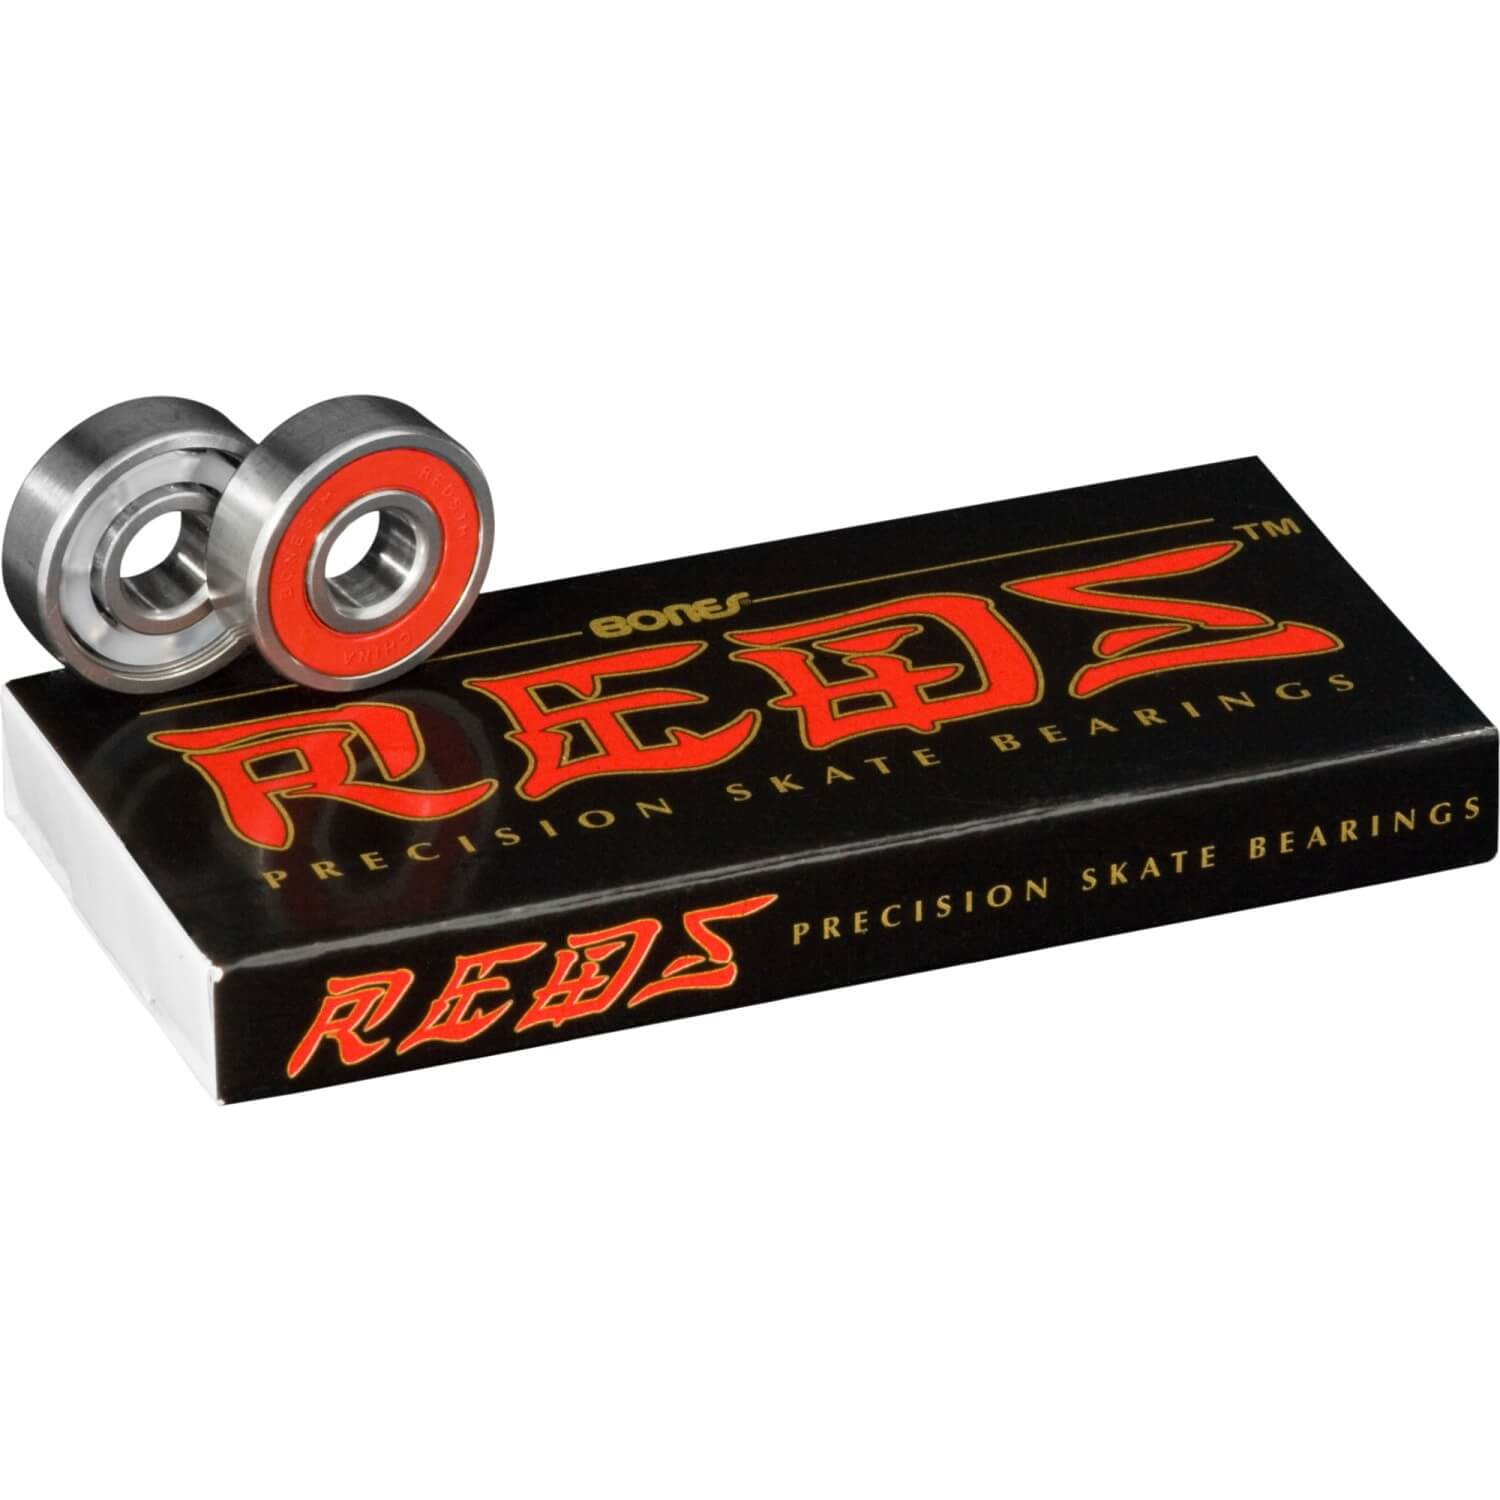 Bones Bearings - Bones REDS Precision Bearings